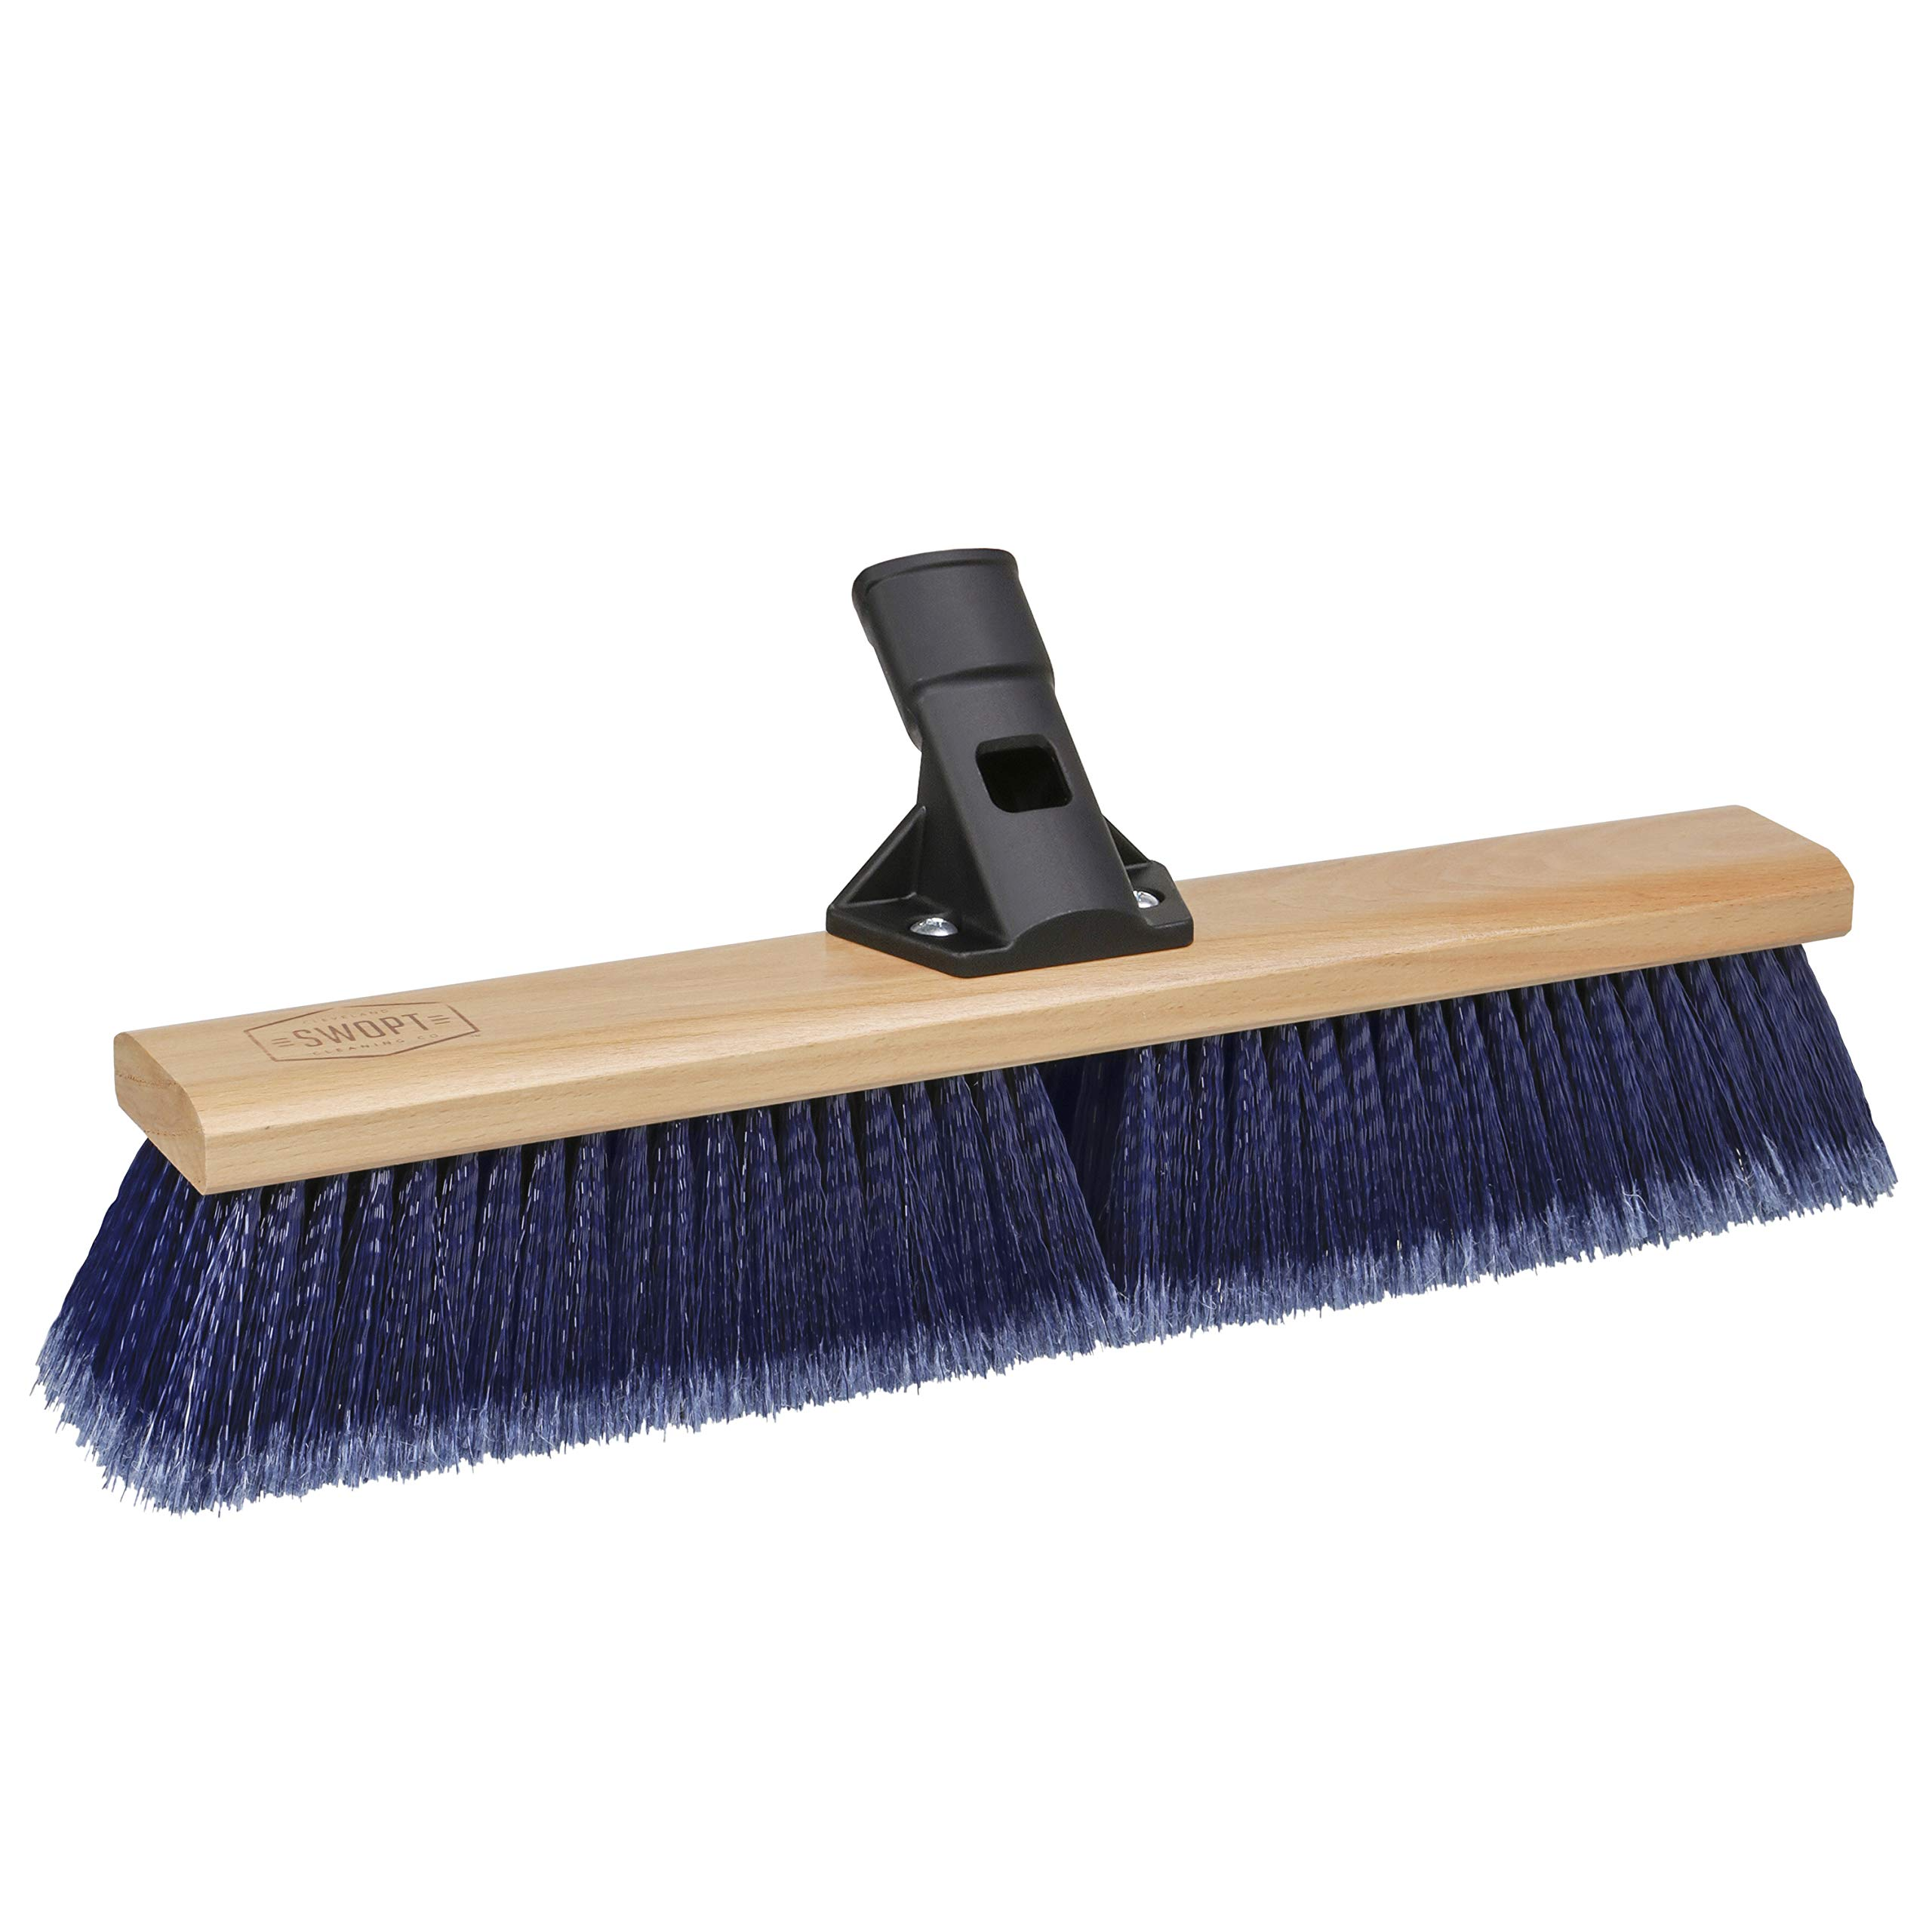 "SWOPT 18"" Premium Multi-Surface Push Broom Head – Push Broom for Indoor and Outdoor Use – Interchangeable with Other SWOPT Products for More Efficient Cleaning and Storage, Head Only, Handle Sold Separately, 5113C4"